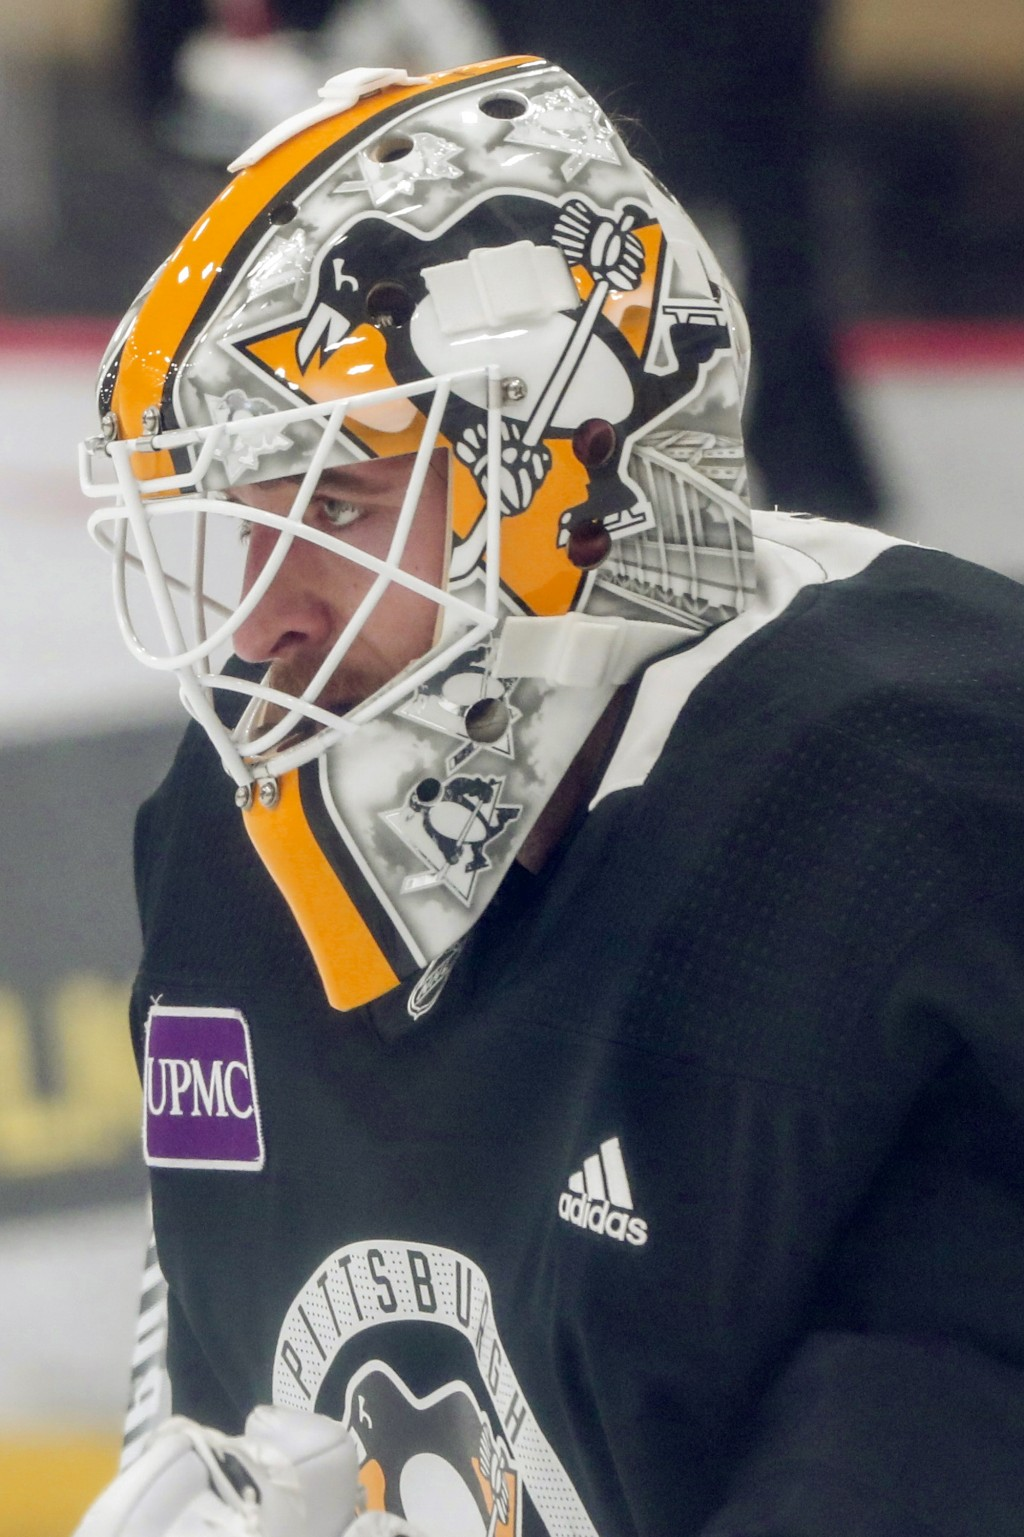 Pittsburgh Penguins goalie Matt Murray looks at the play ahead of him during NHL hockey practice on the team's first day of training camp, Friday, Sep